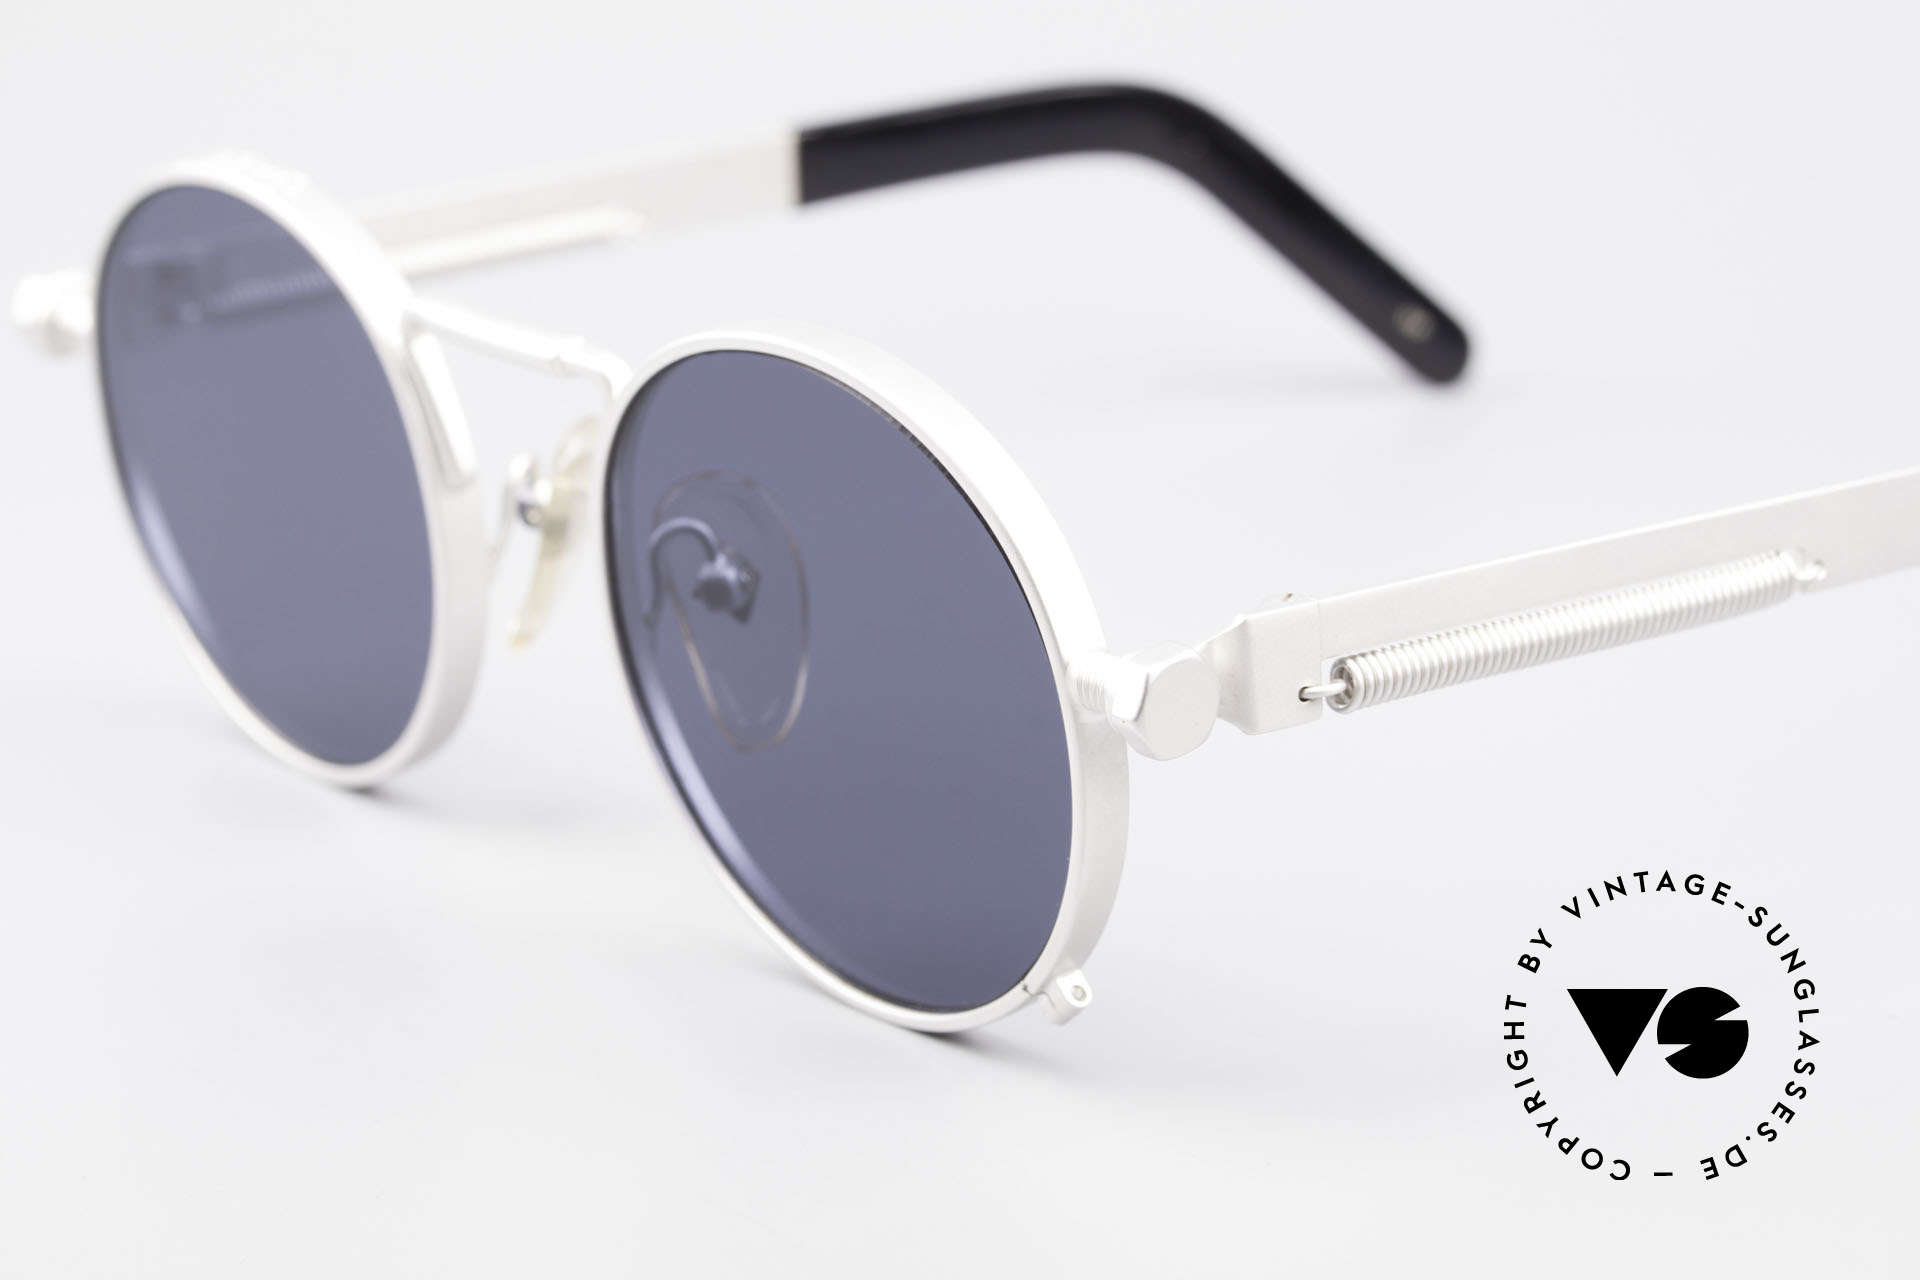 Jean Paul Gaultier 56-8171 Steampunk Vintage Glasses, the most wanted Gaultier vintage sunglasses, worldwide, Made for Men and Women